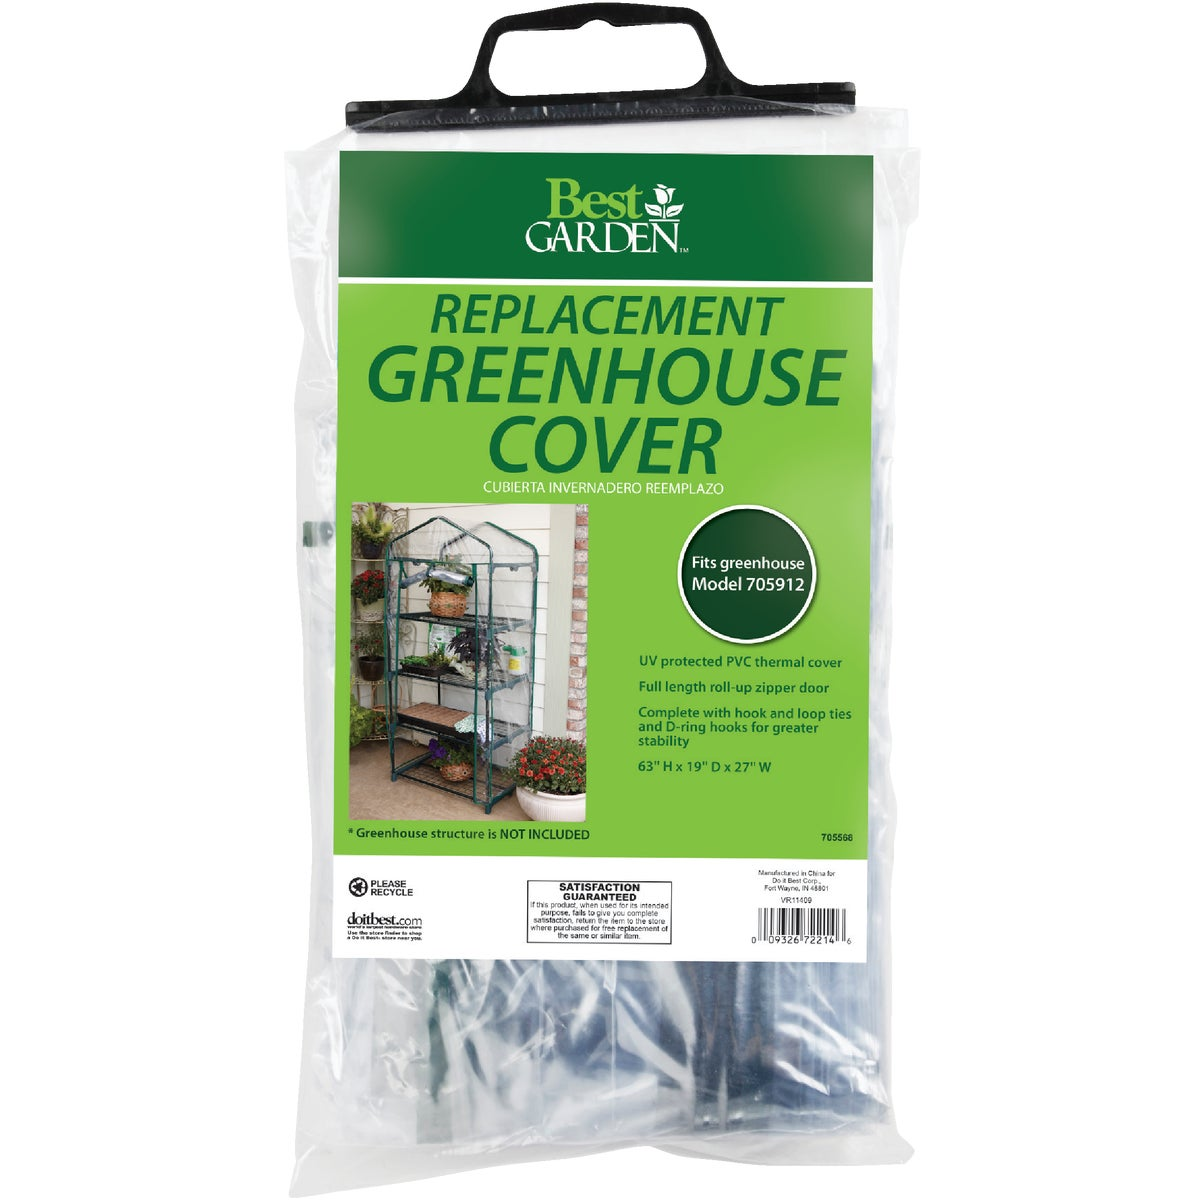 SMALL GREENHOUSE COVER - HS1108-C by Do it Best